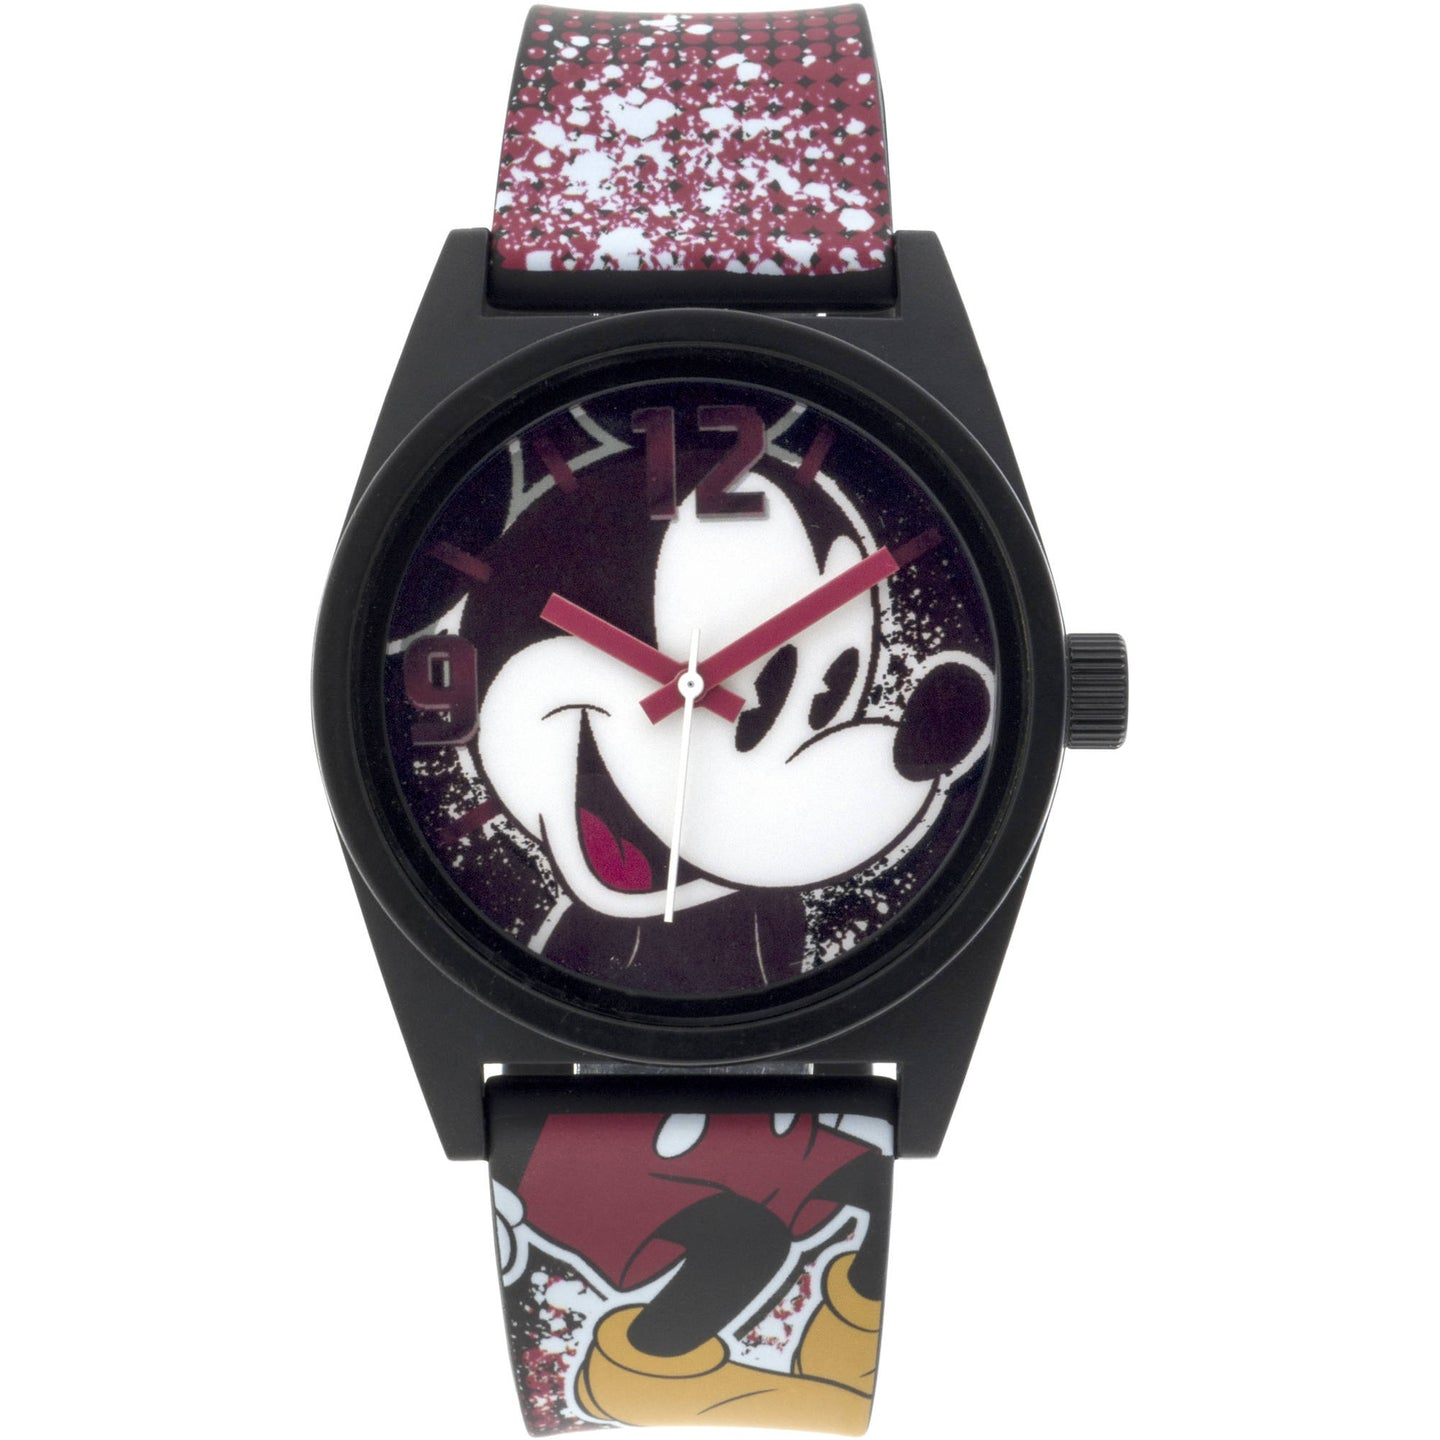 Disney Mickey Mouse Black Case Character-Printed Dial Analog Watch, Printed Art Strap